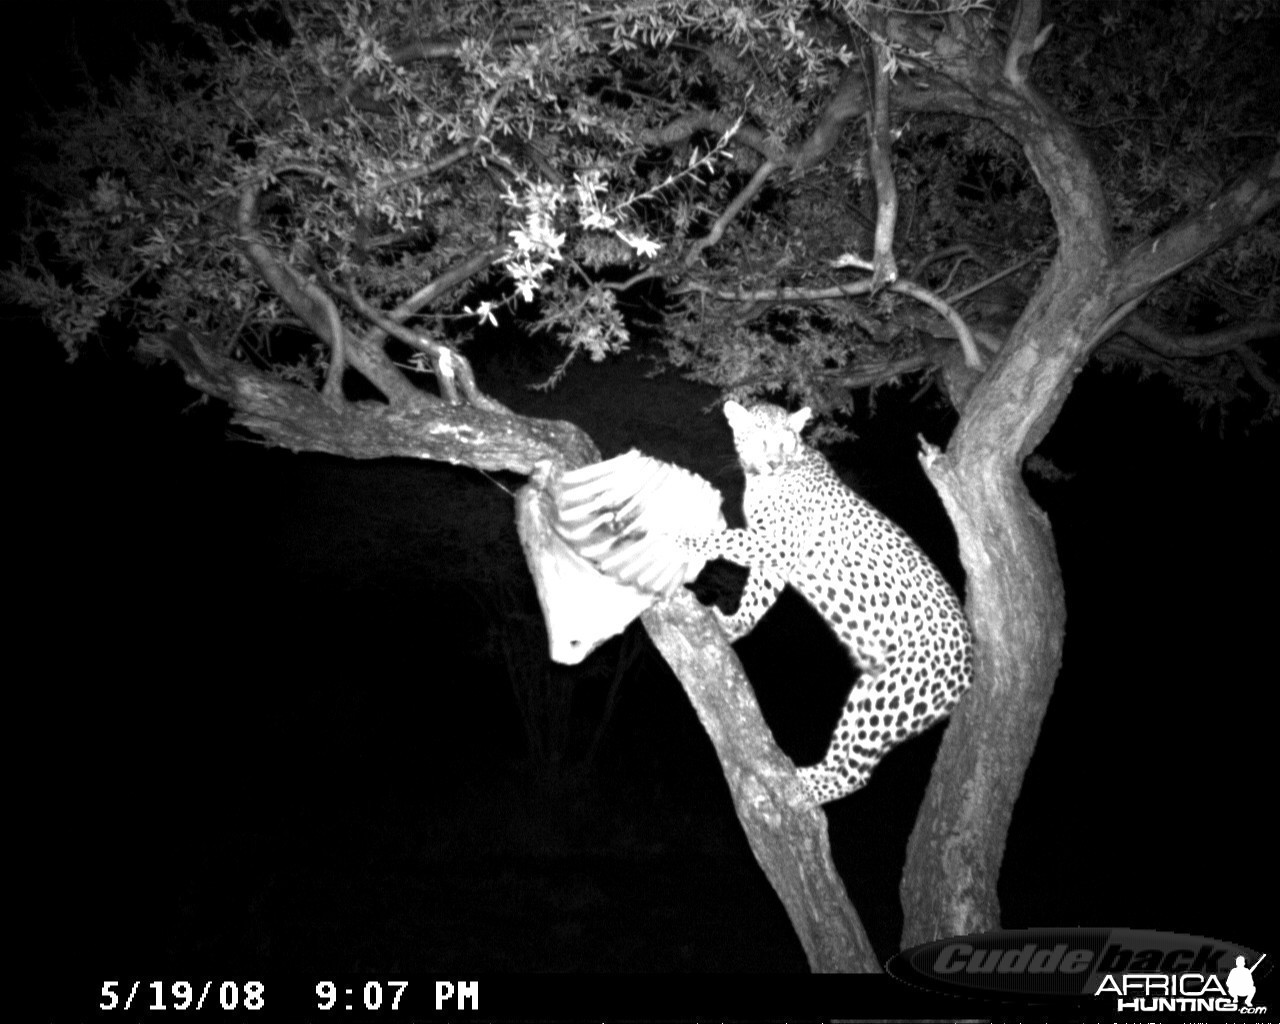 Leopard on Bait at Ozondjahe Safaris Namibia